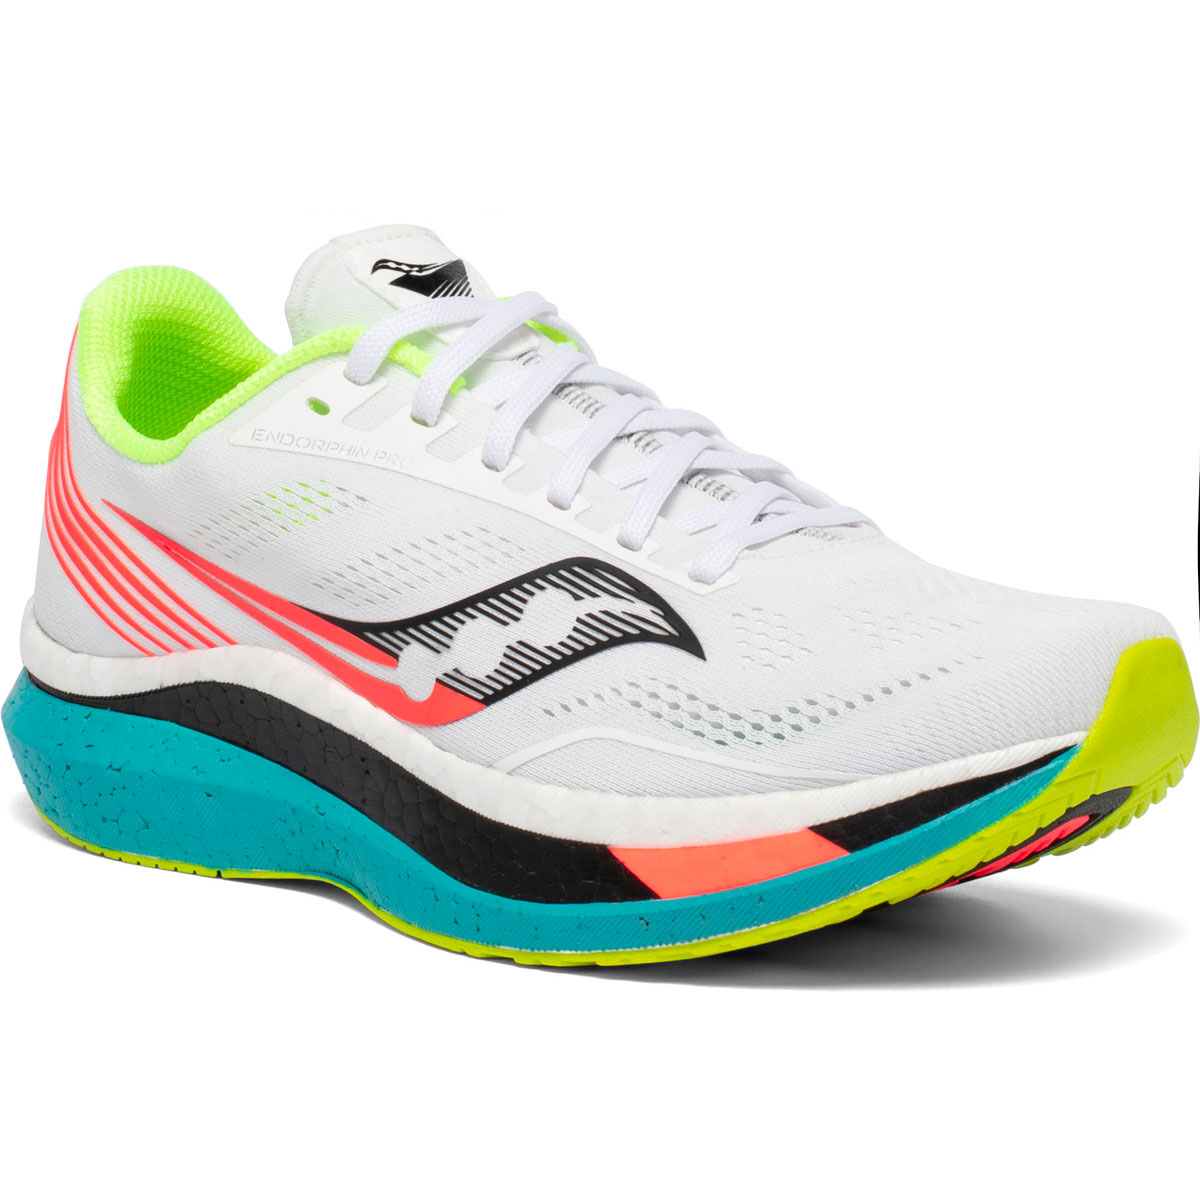 Women's Saucony Endorphin Pro Running Shoe - Color: White Mutant (Regular Width) - Size: 5, White Mutant, large, image 2